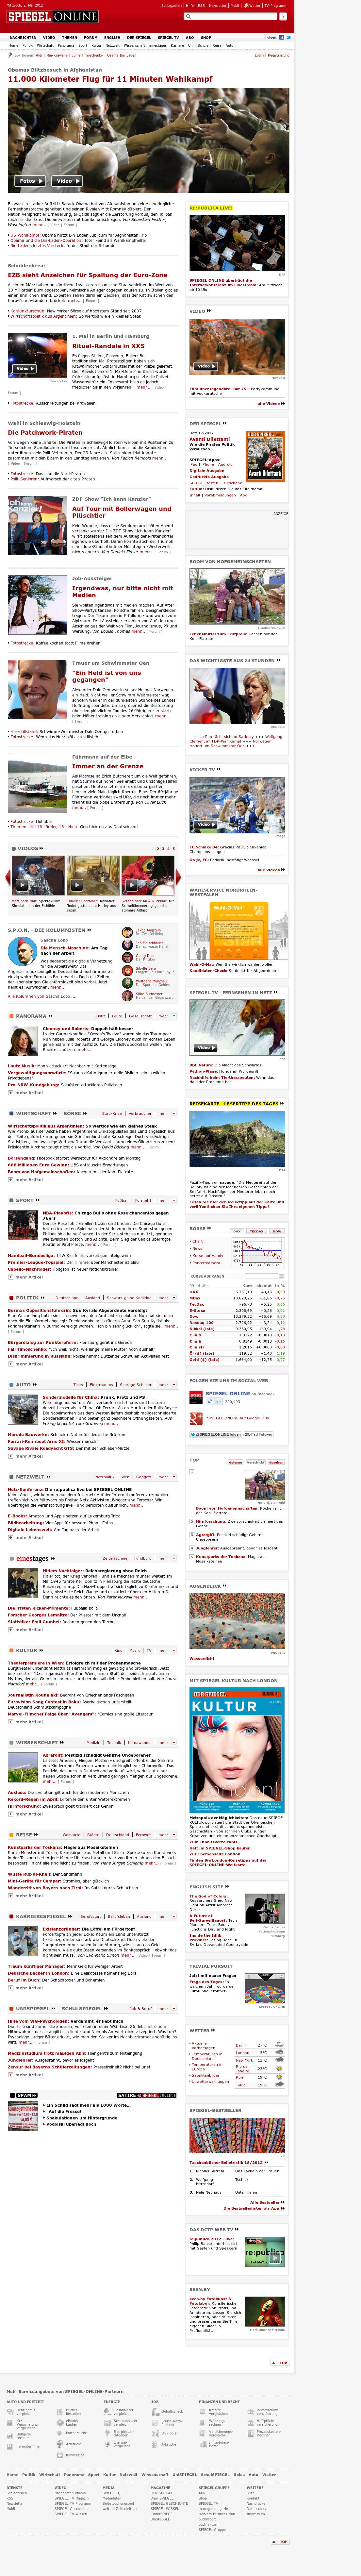 Spiegel Online at Wednesday May 2, 2012, 7:16 a.m. UTC